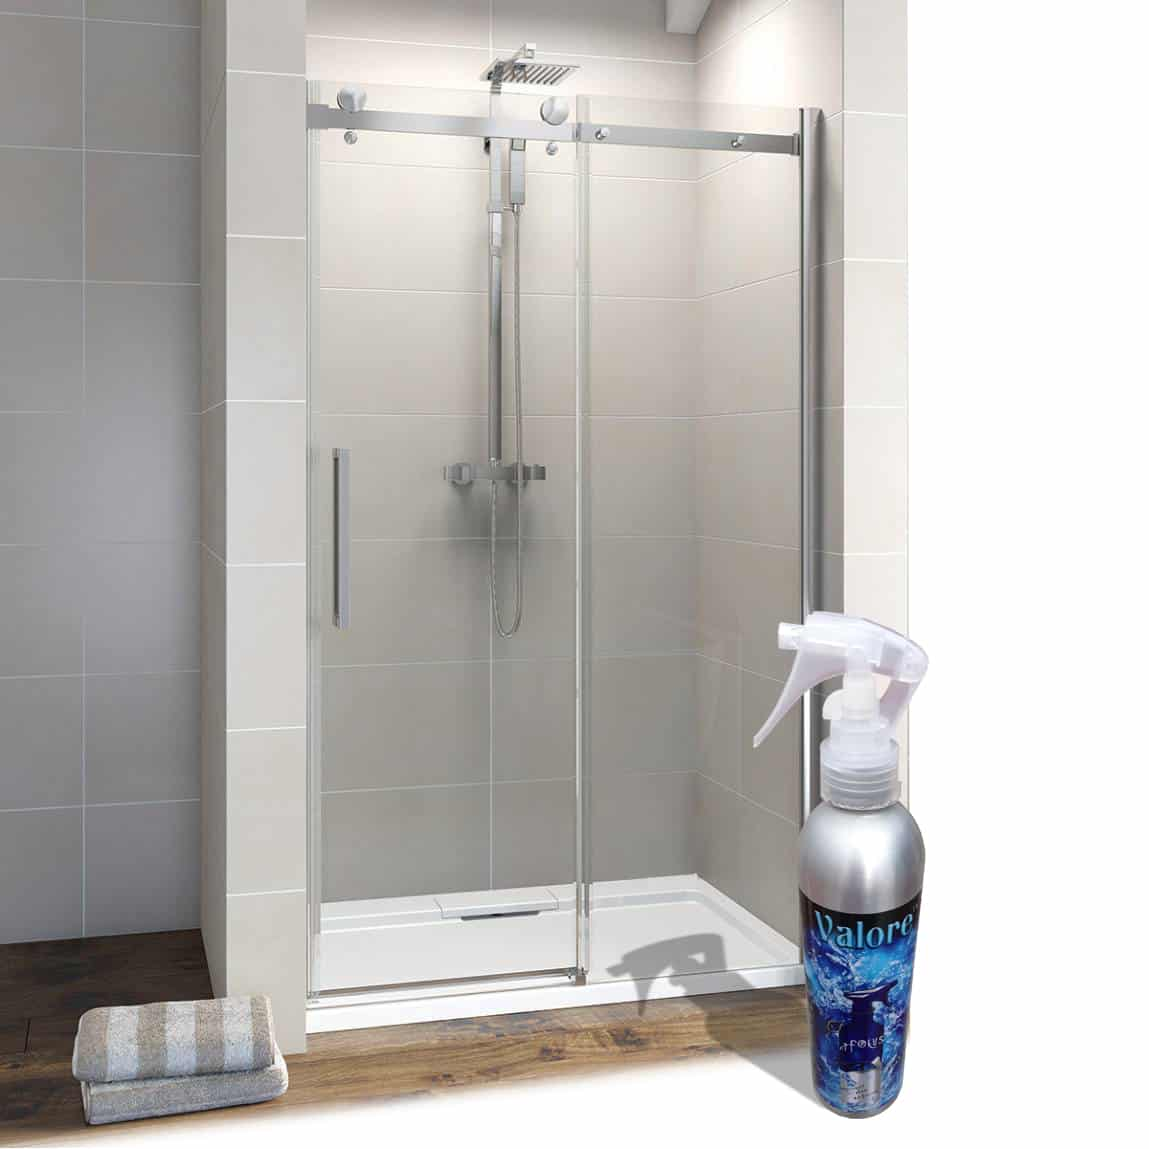 sealing glass shower doors has never been so easy